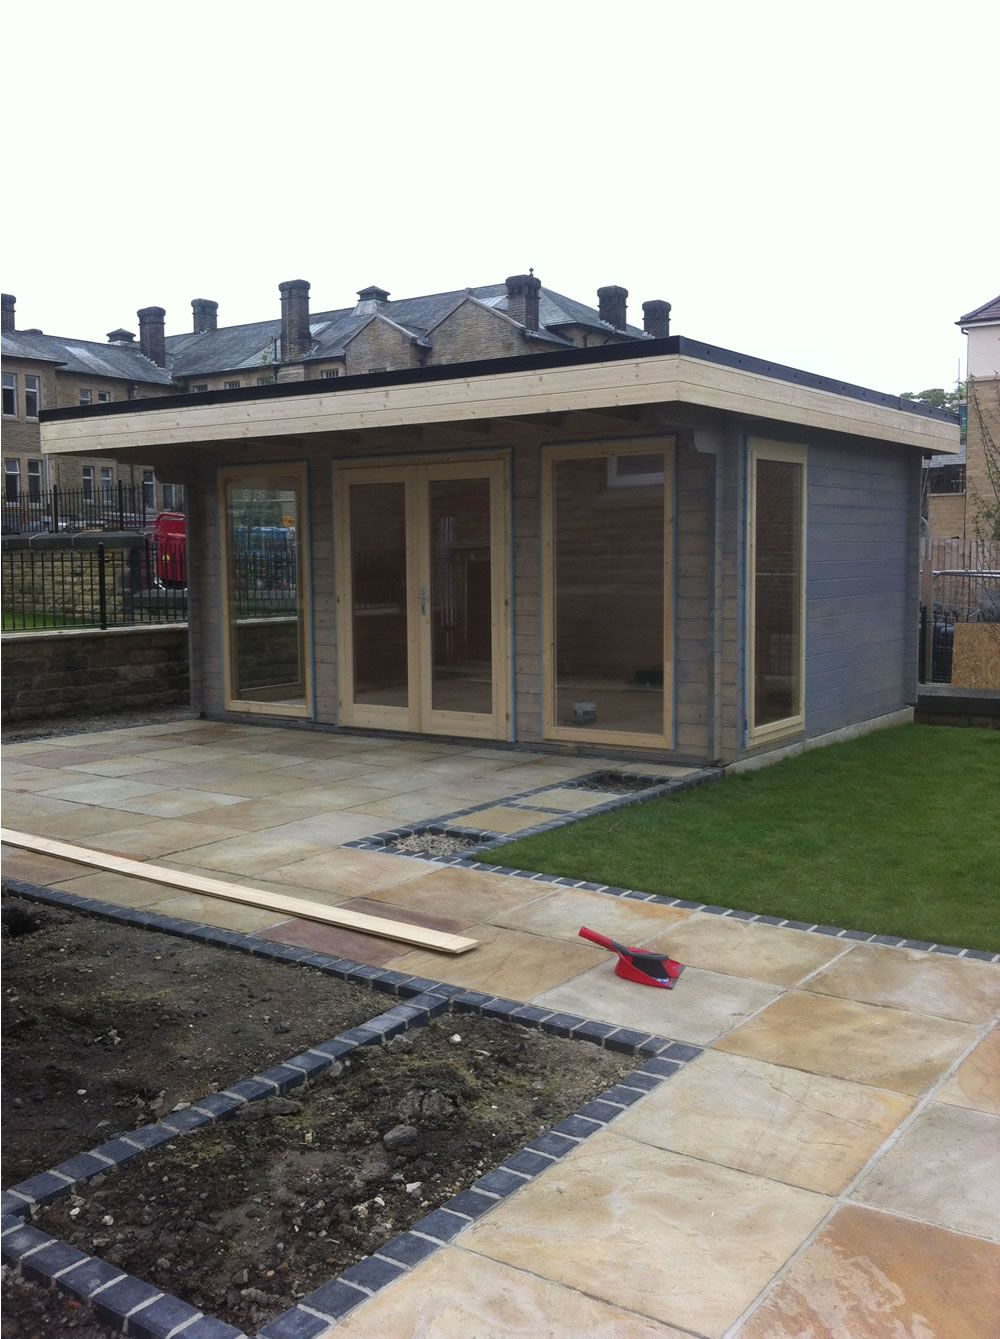 Garden Office Log Cabin Yorick 5x3 8m Modern Log Cabins Brown Roofs Epdm Roofing